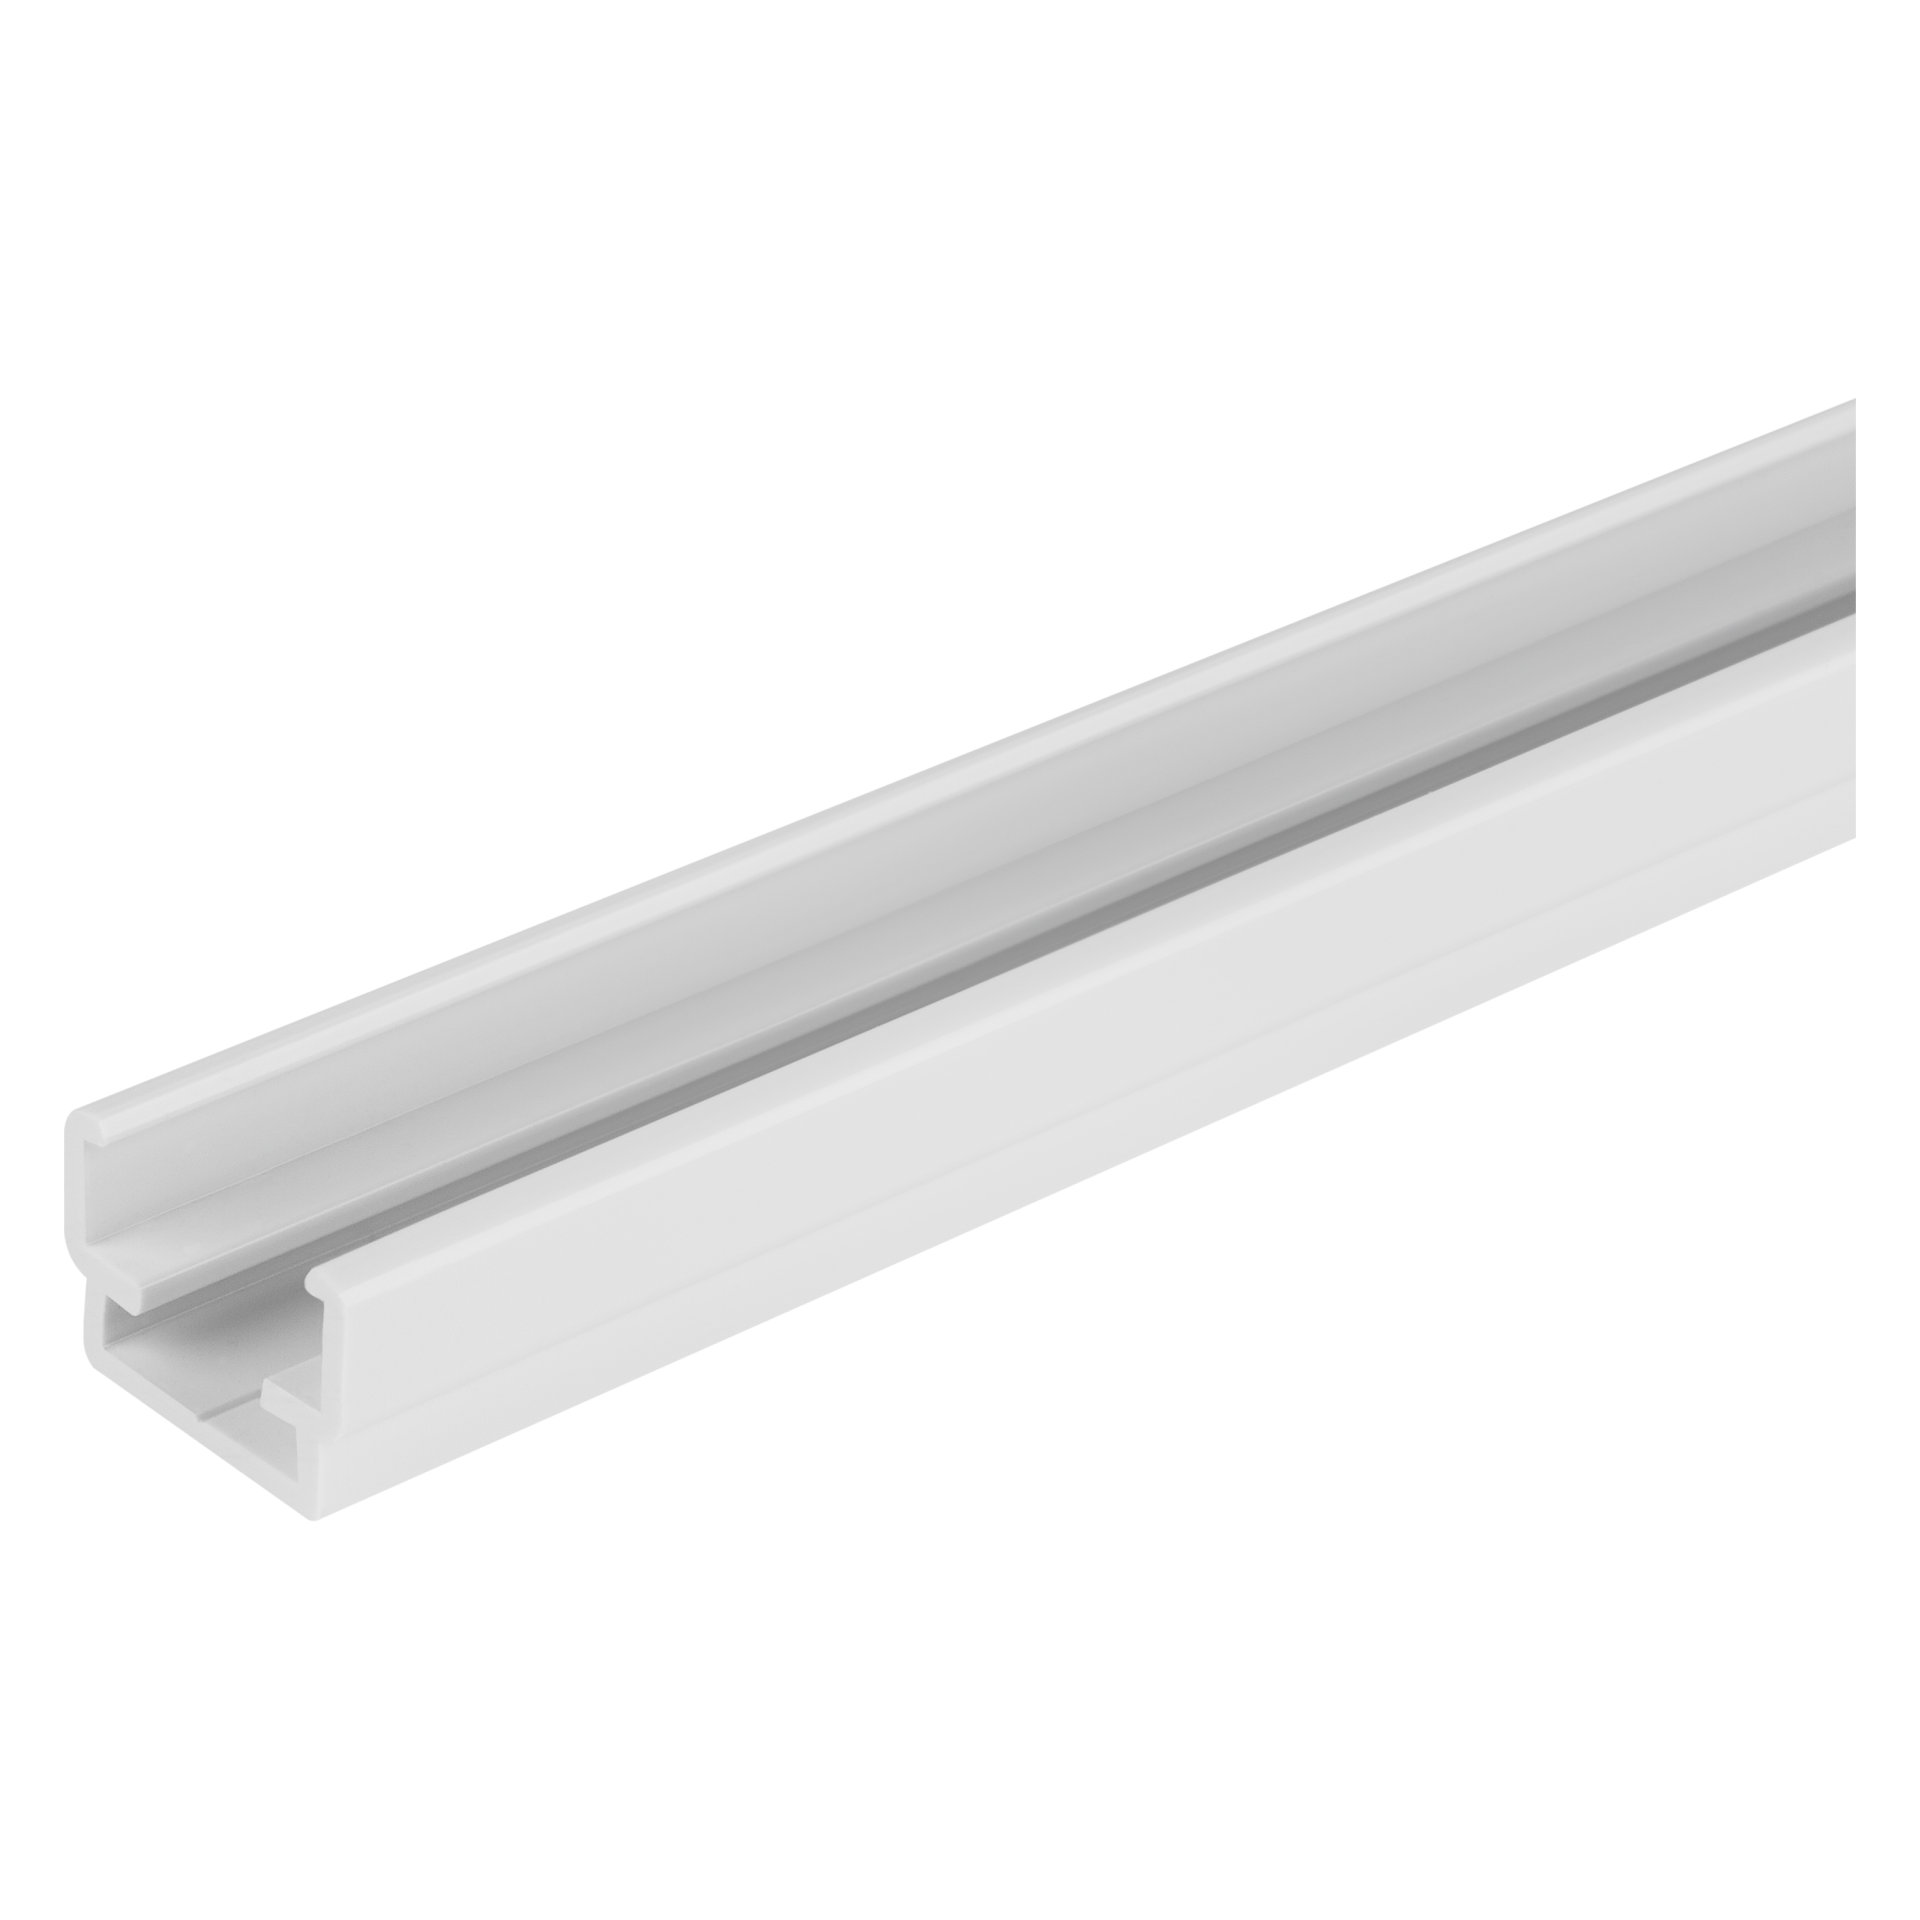 LED Strip Superior Profiles Profiles for professional LED strips